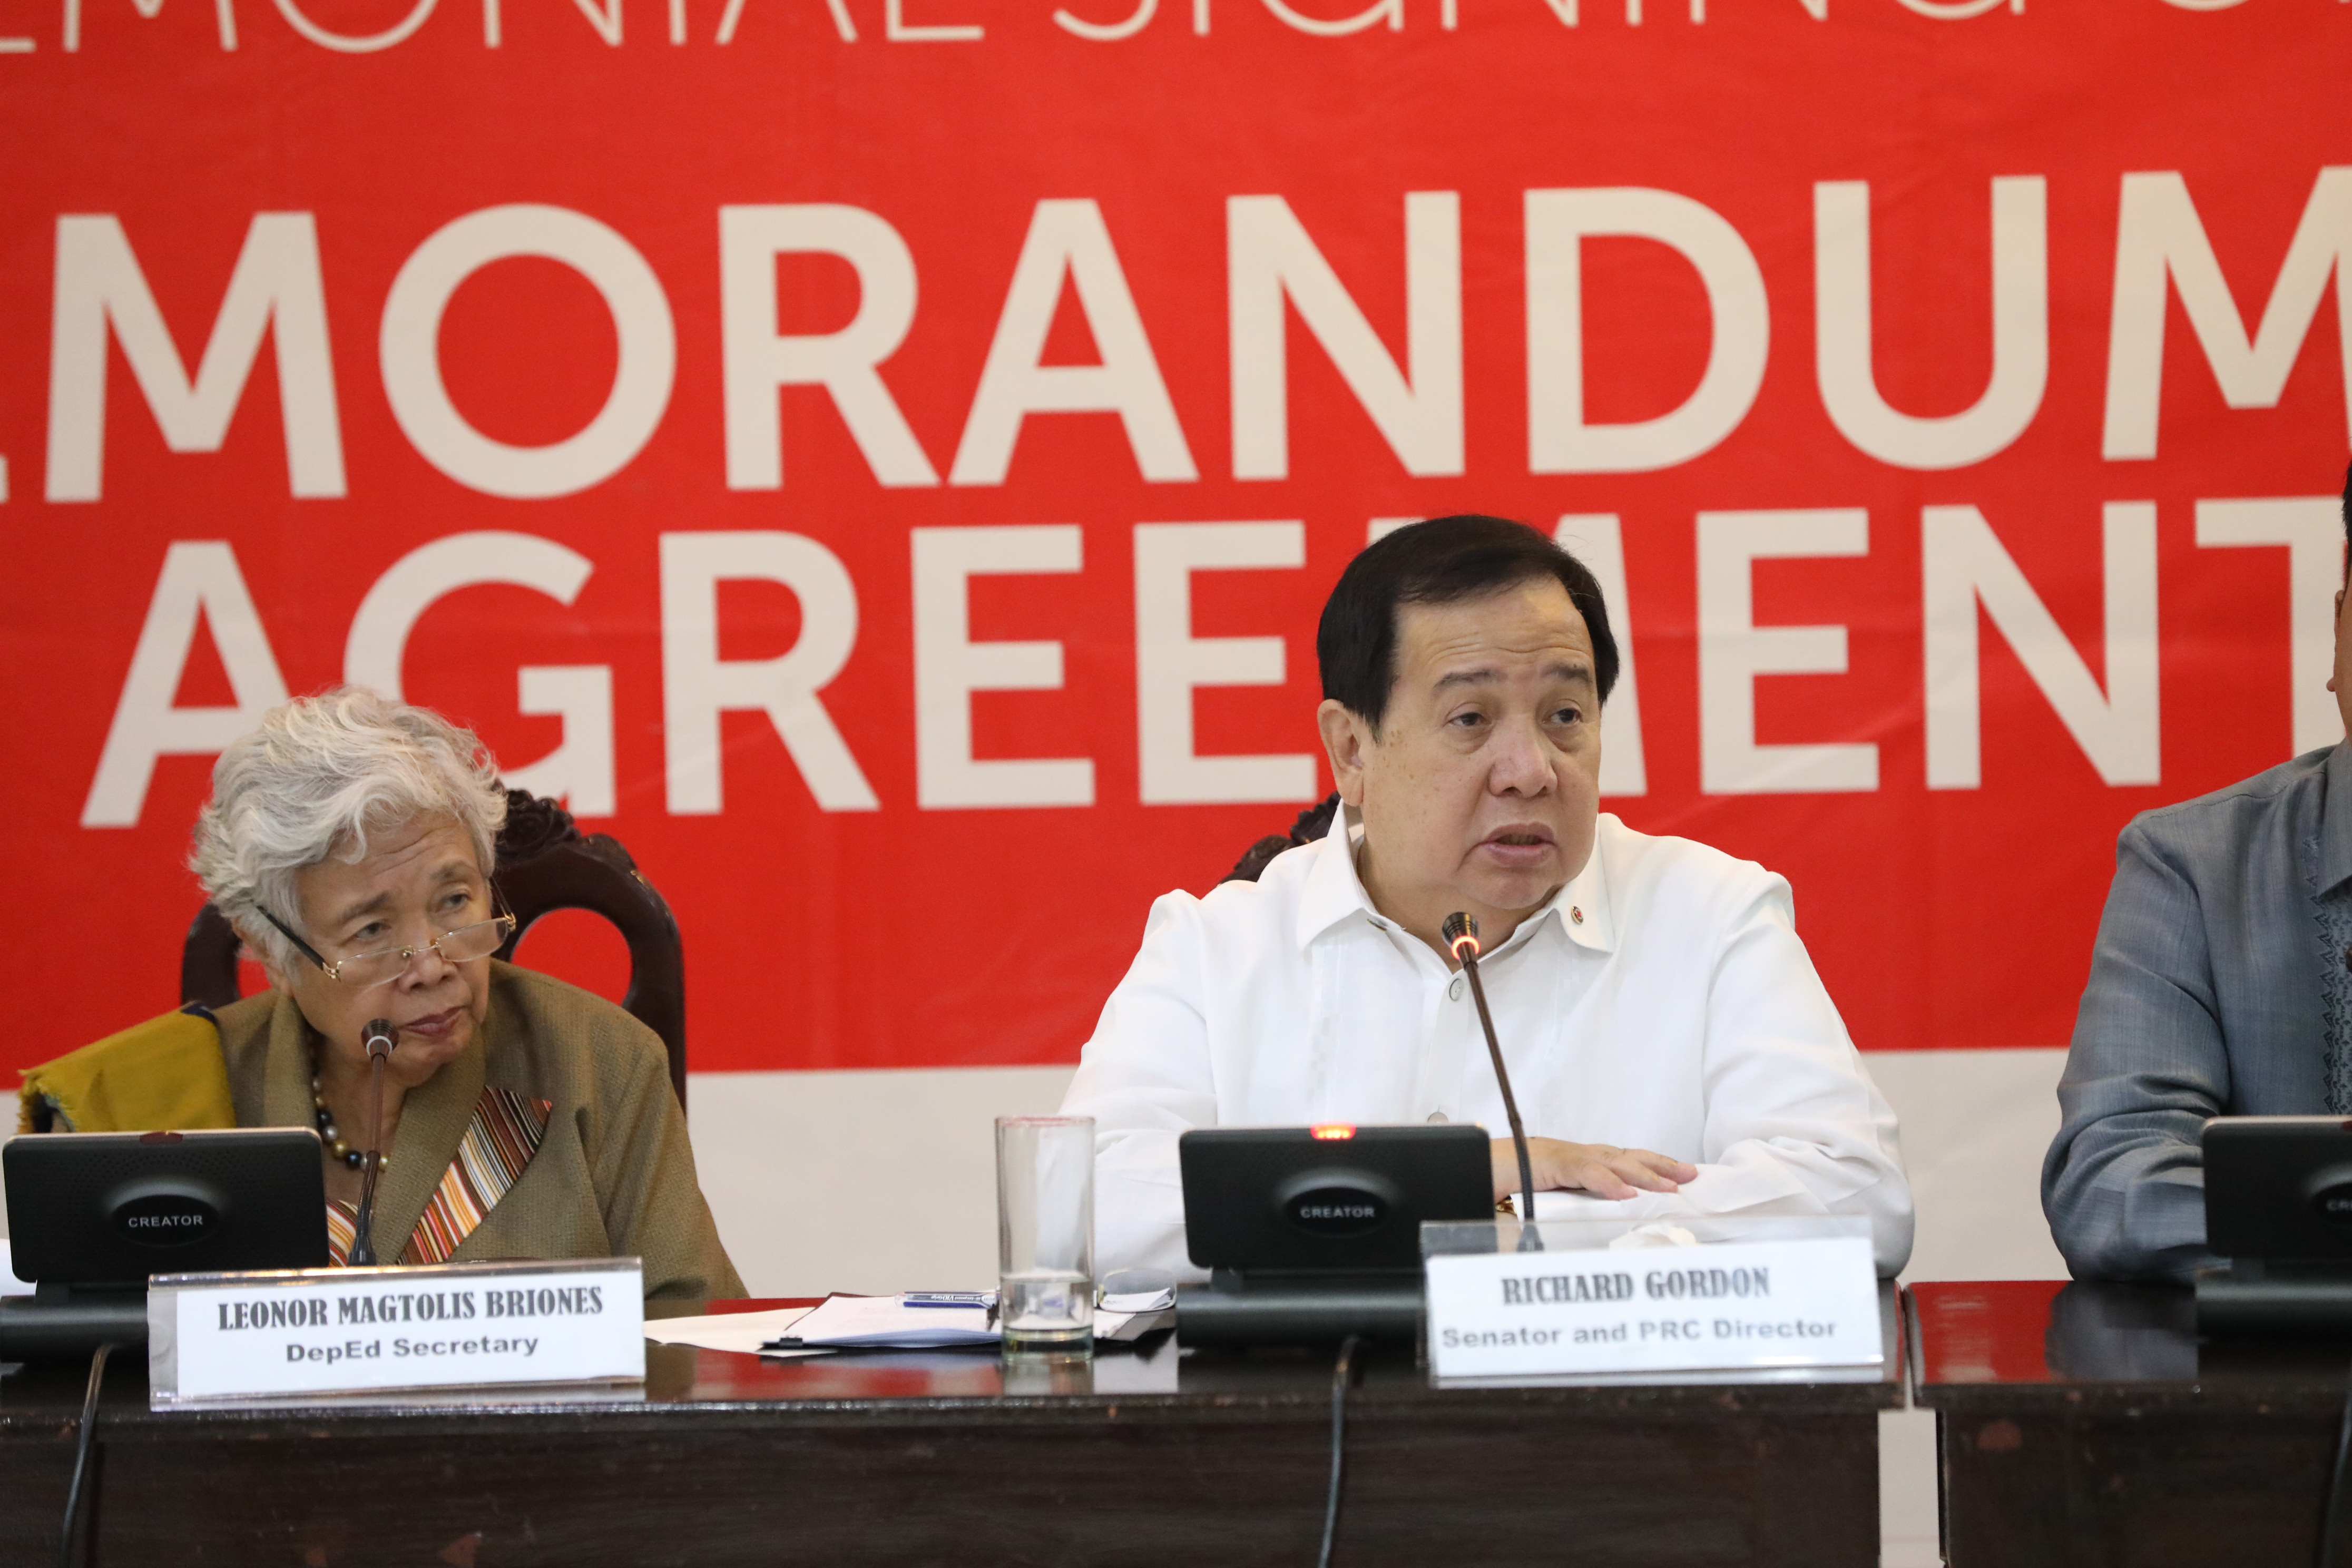 DepEd, CHED, Red Cross team up to promote volunteerism in